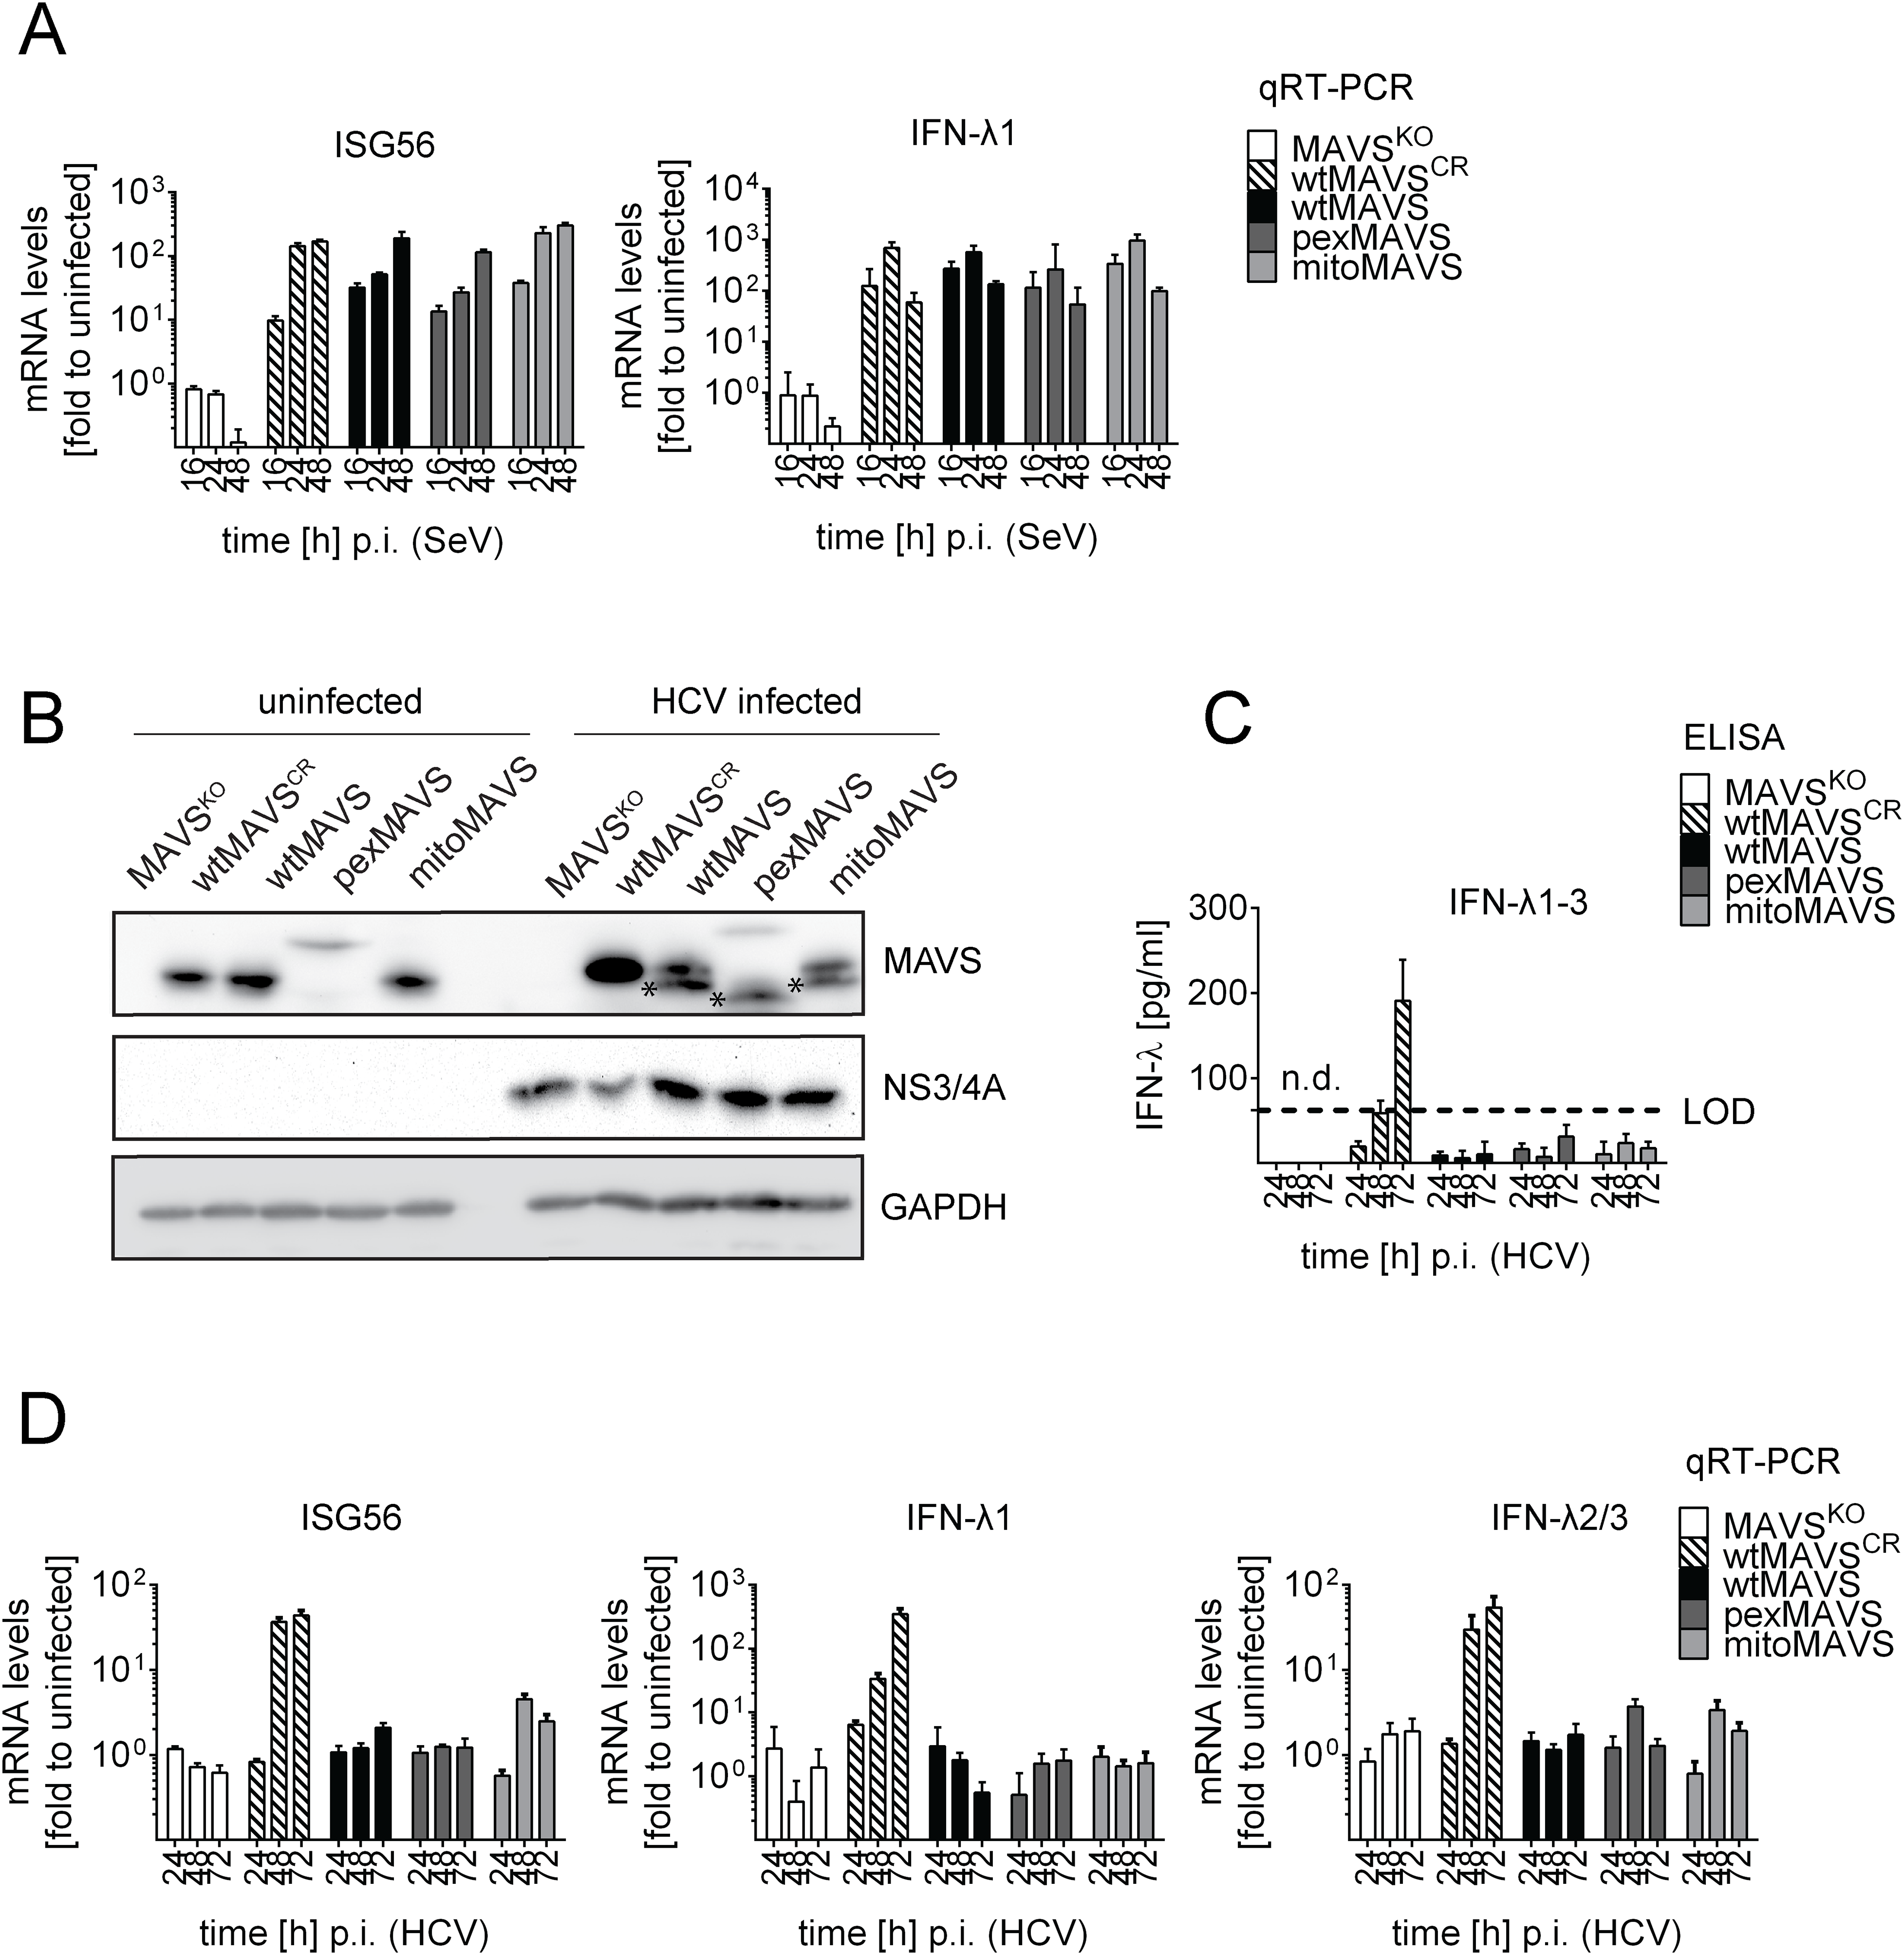 Blunting of the interferon response upon HCV infection occurs independent from MAVS subcellular localization.